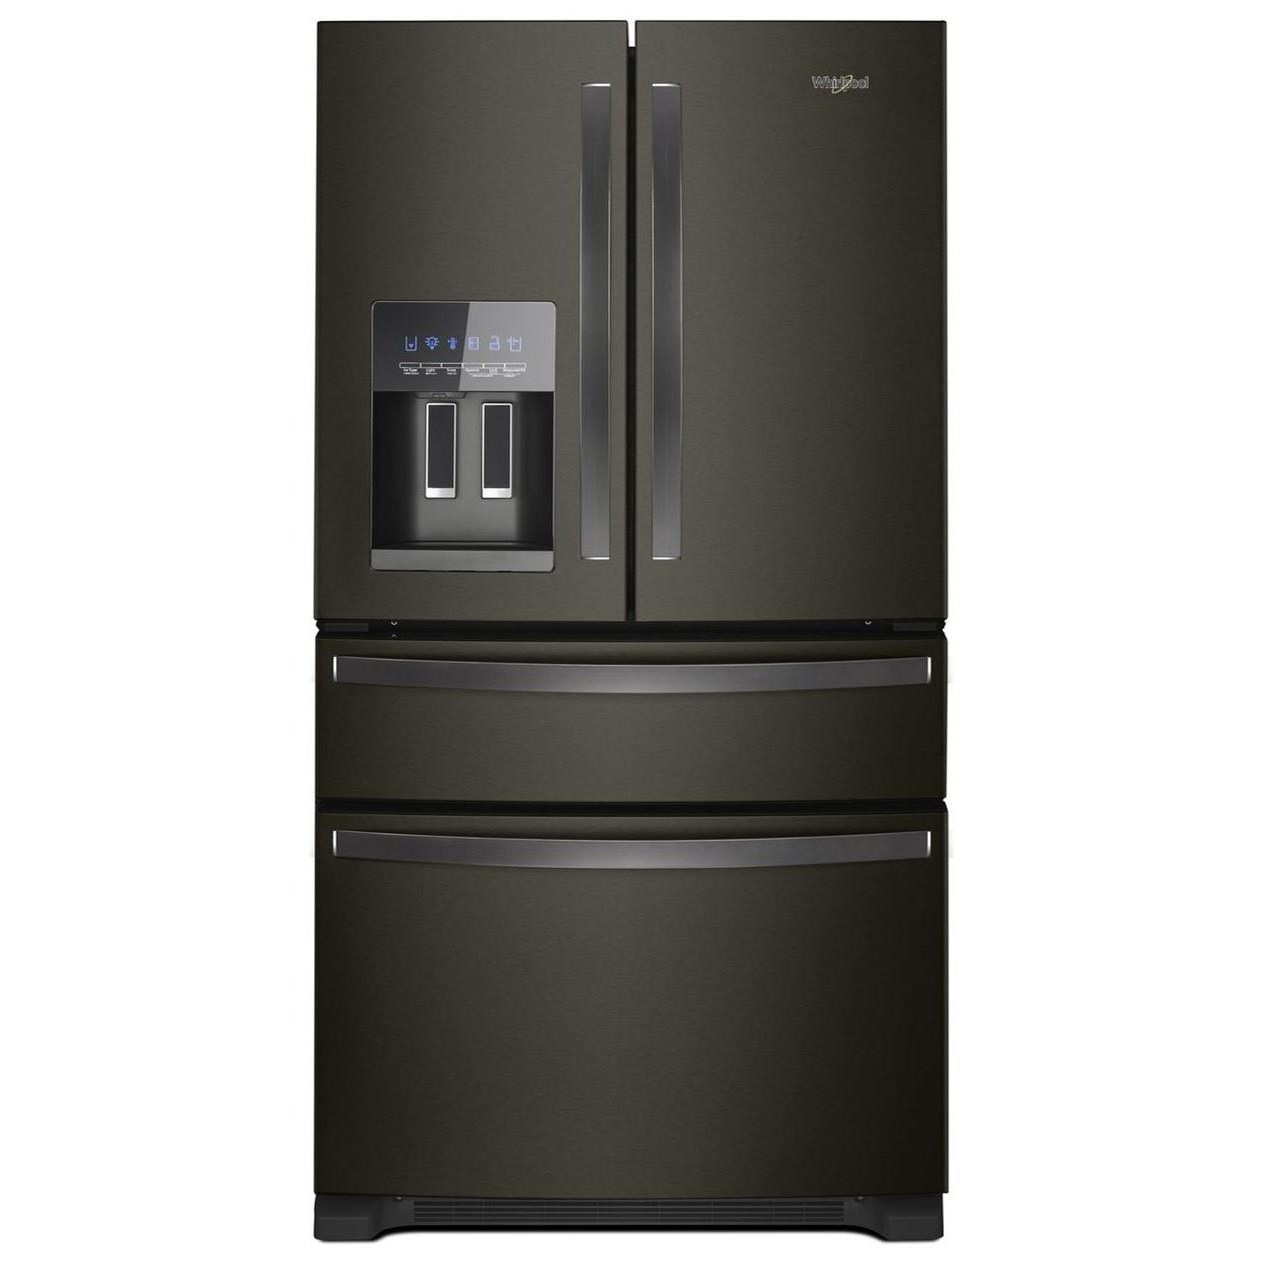 whirlpool wrx735sdhv36 inch wide french door refrigerator 25 cu ft furniture and. Black Bedroom Furniture Sets. Home Design Ideas